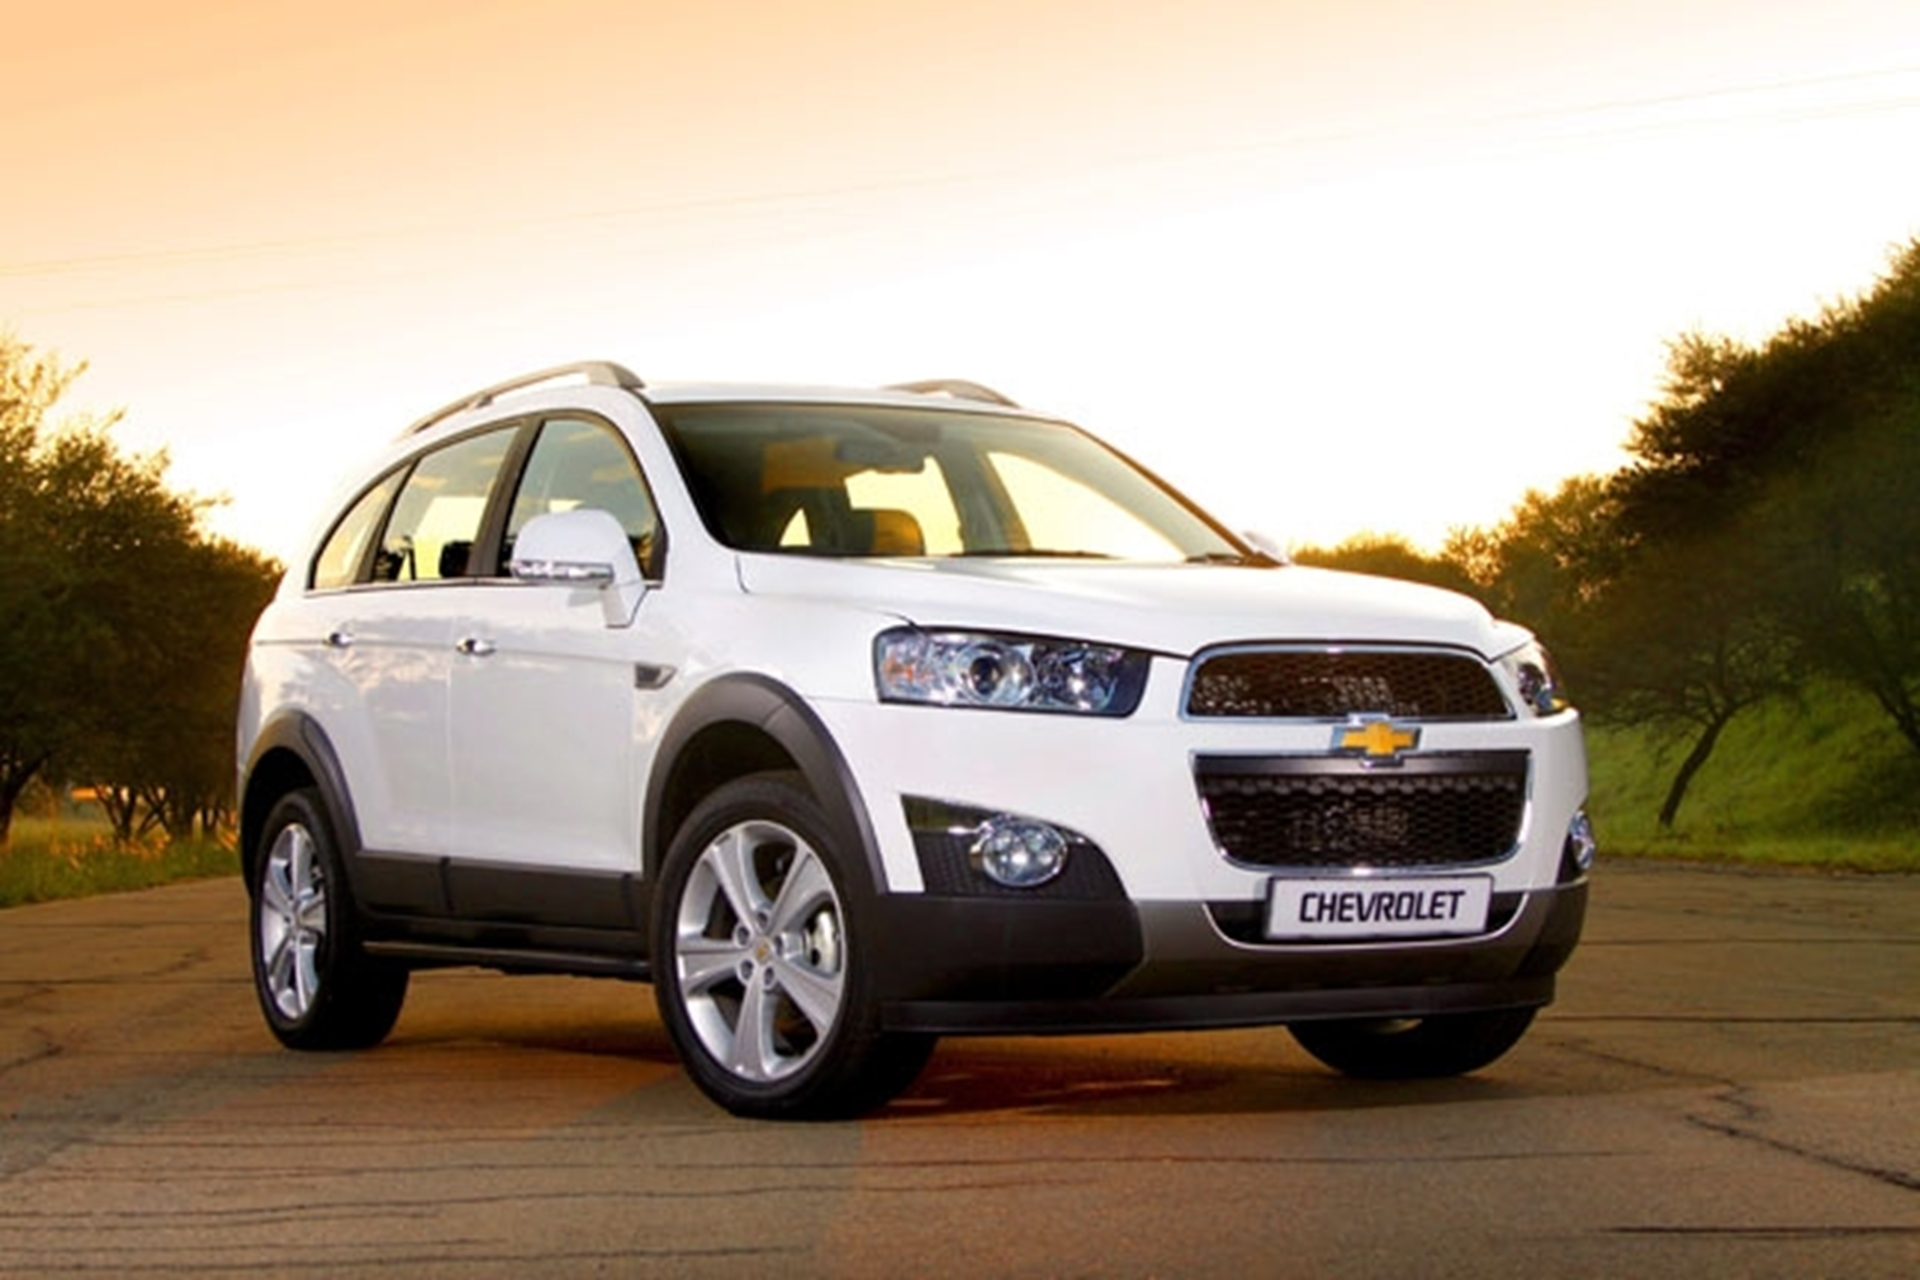 http://3d-car-shows.com/wp-content/uploads/2012/02/chevrolet-captiva-2012.jpg